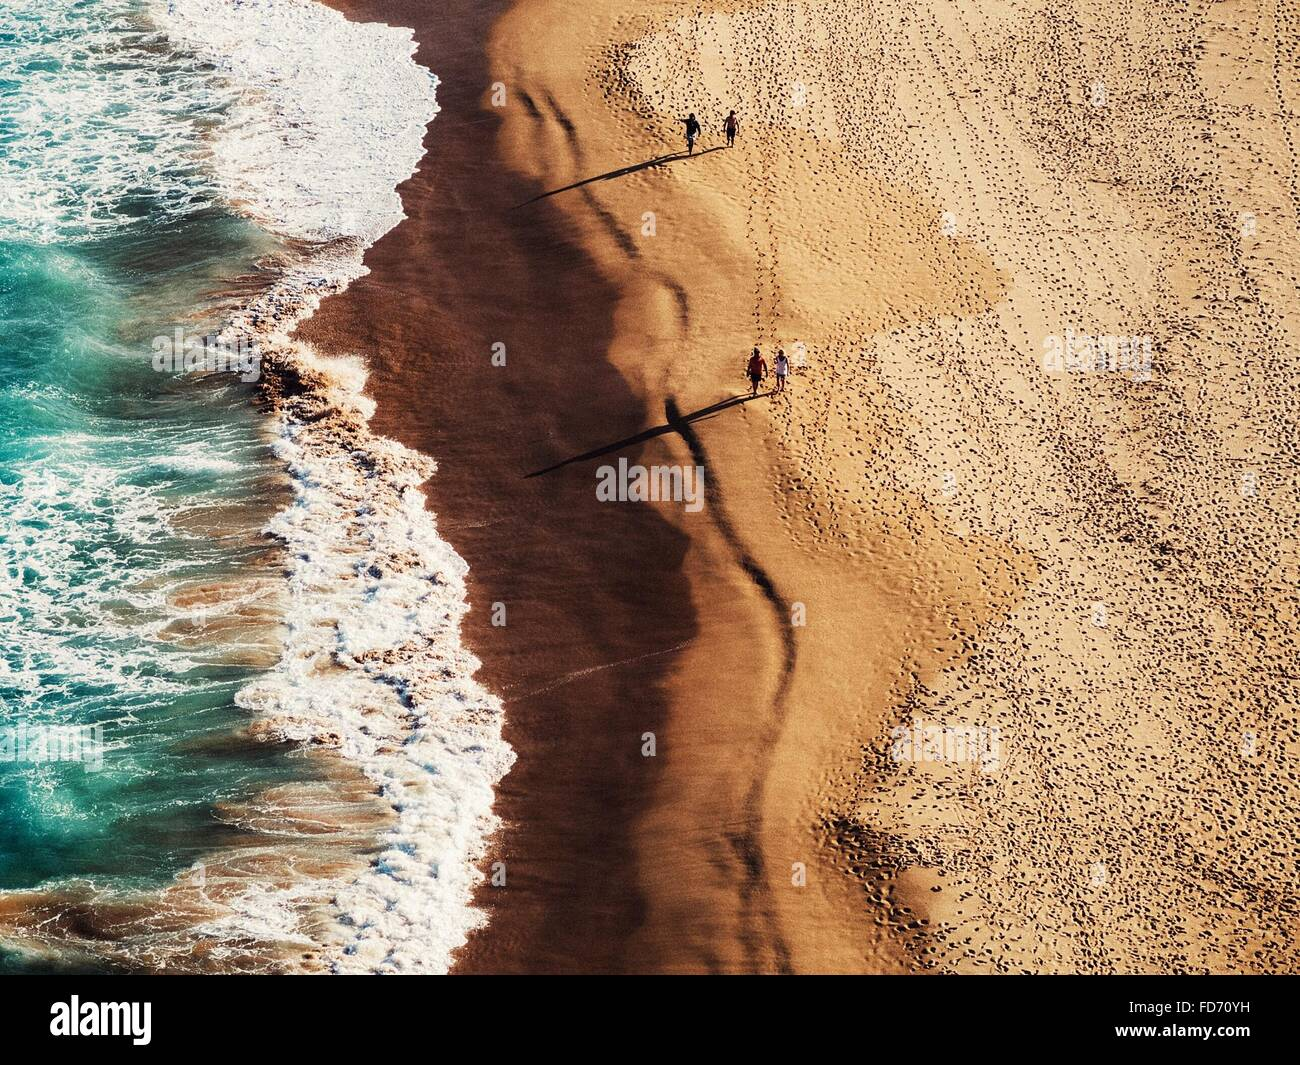 Elevated View Of Beach - Stock Image